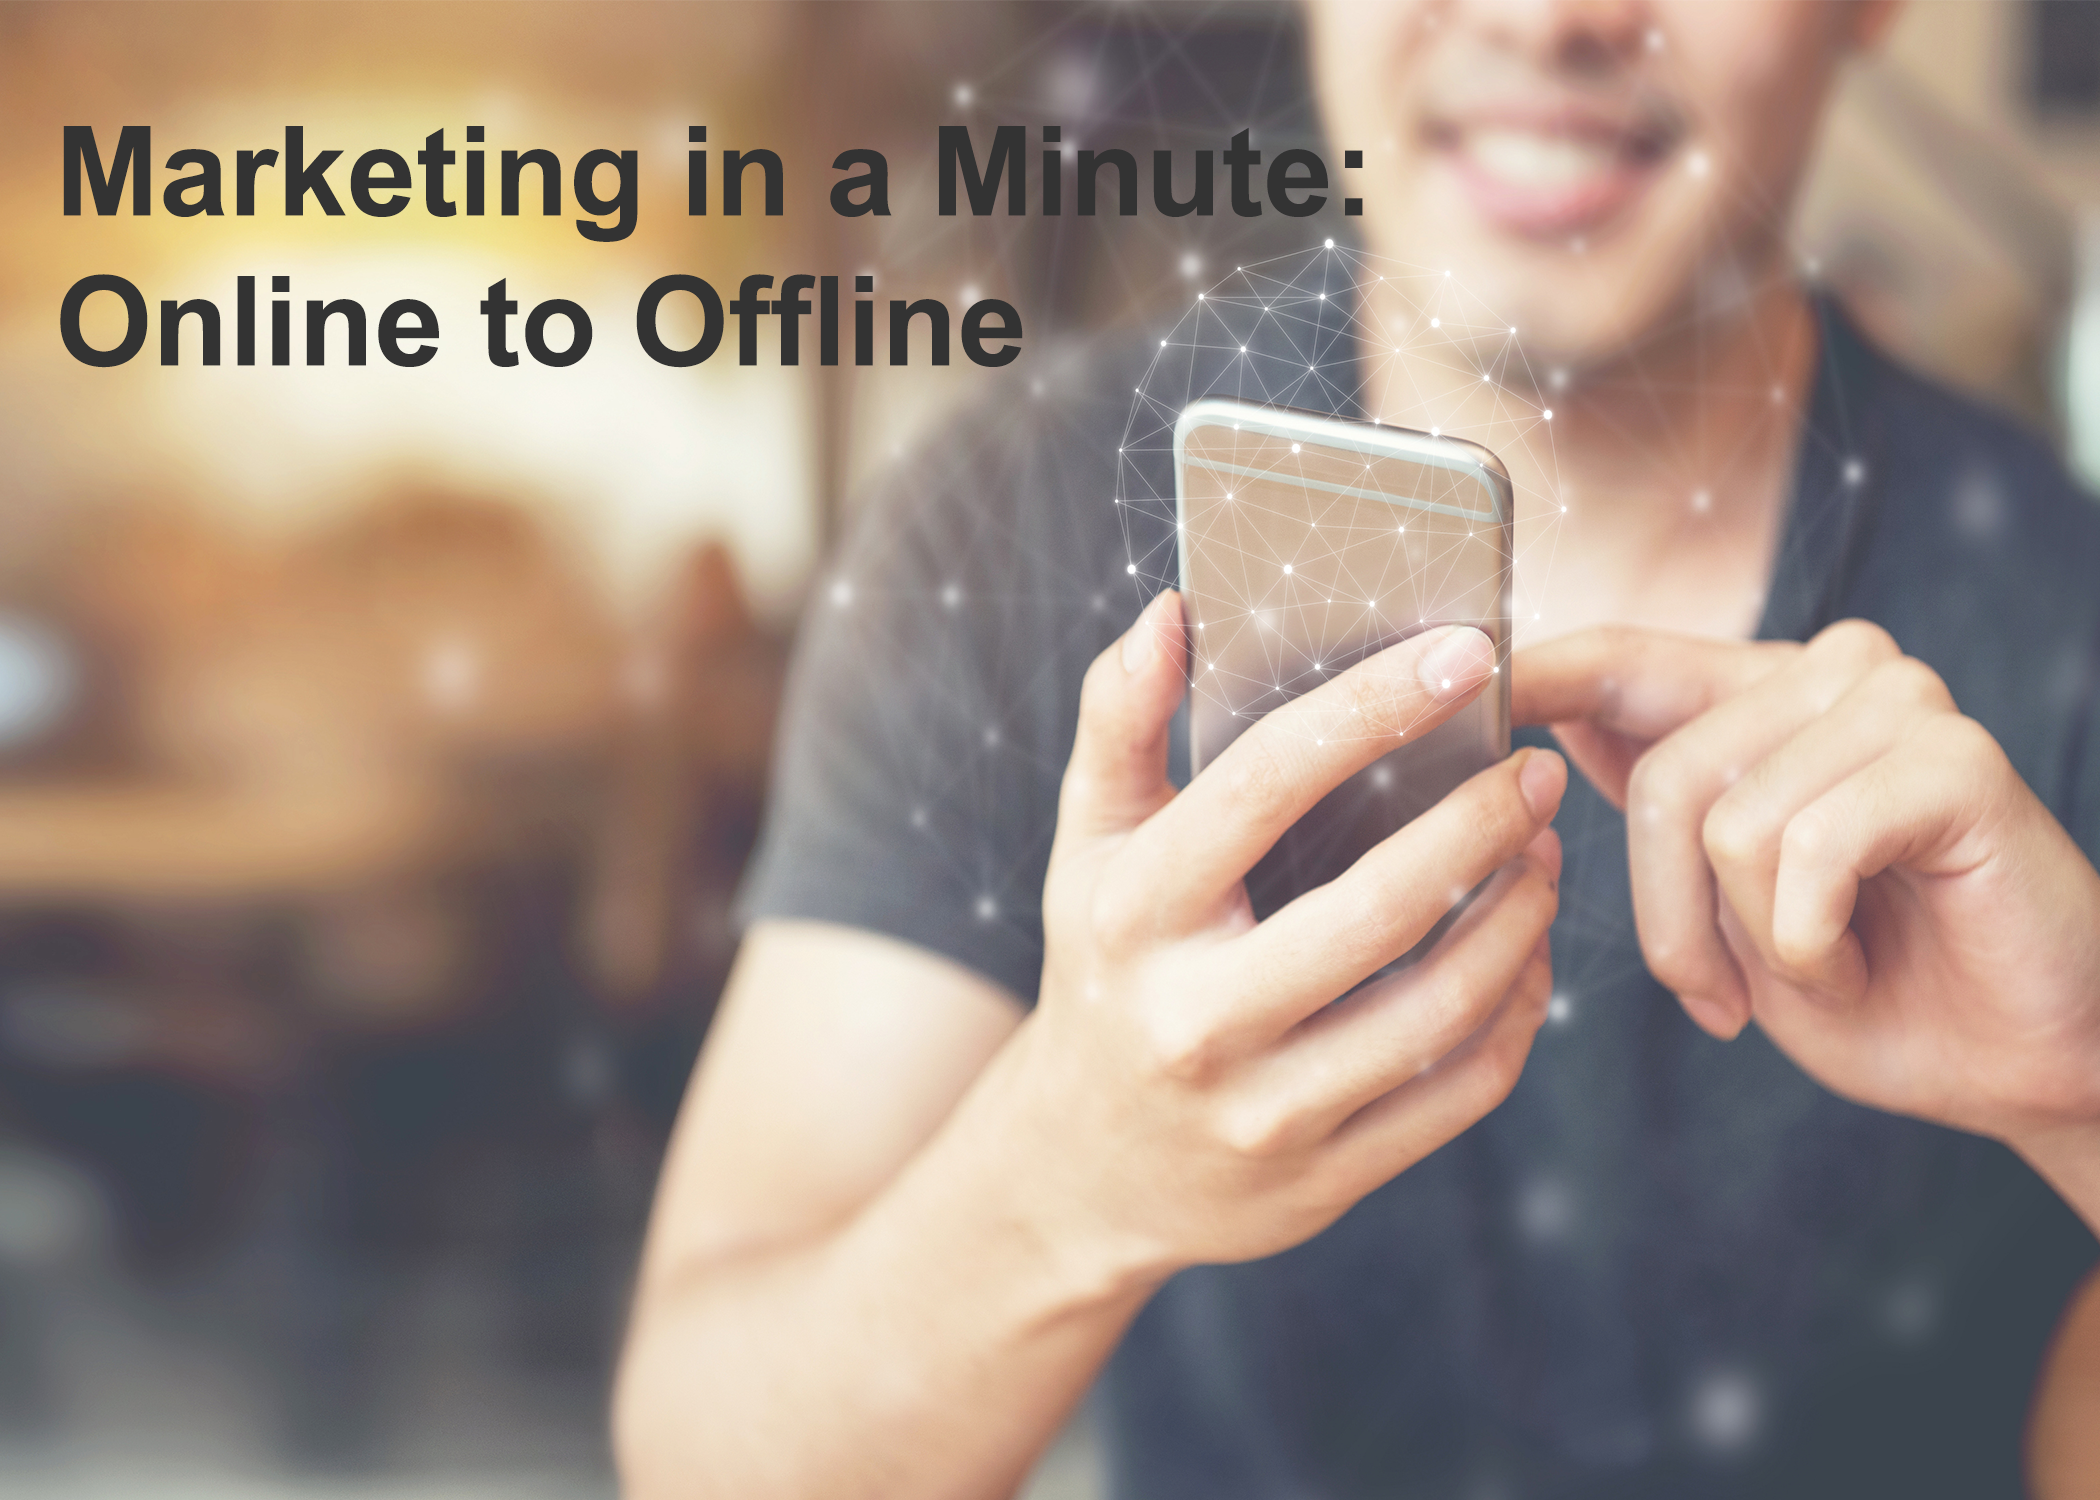 Marketing in a Minute: Online to Offline